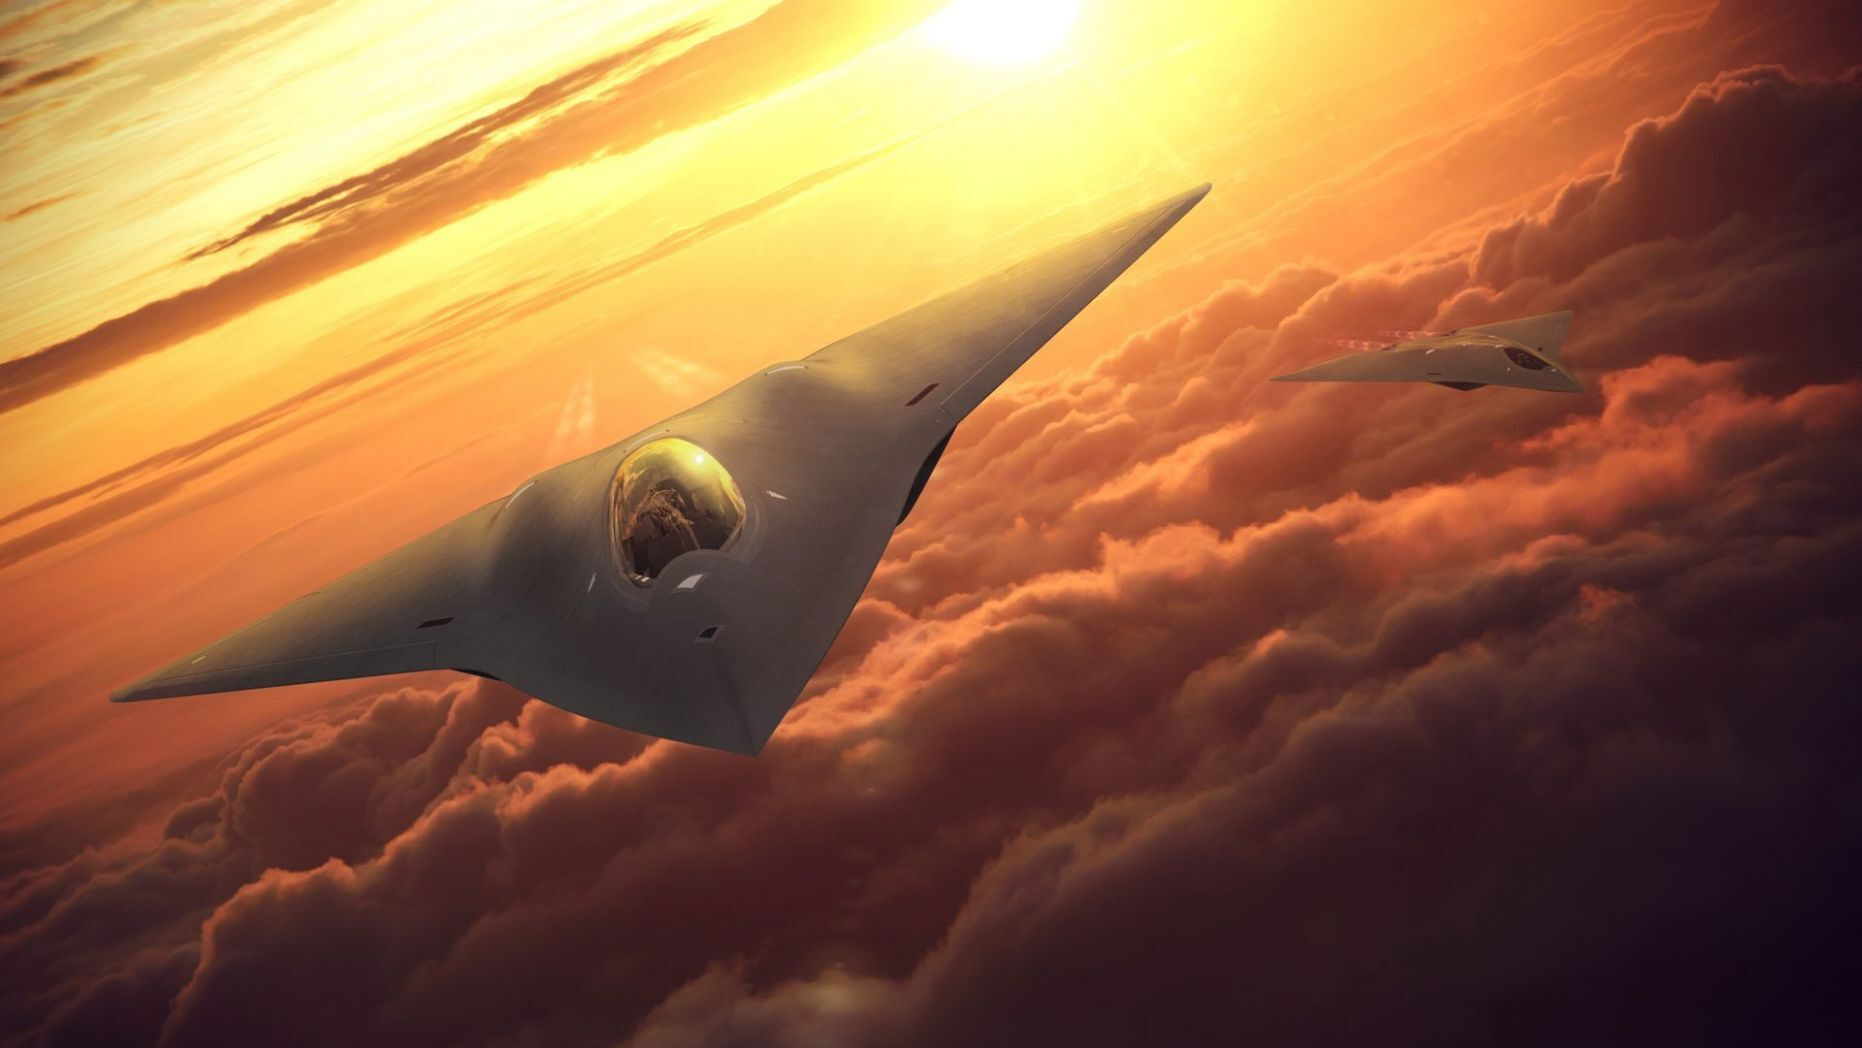 6th-Gen Stealth Fighter – 'Super Fast'